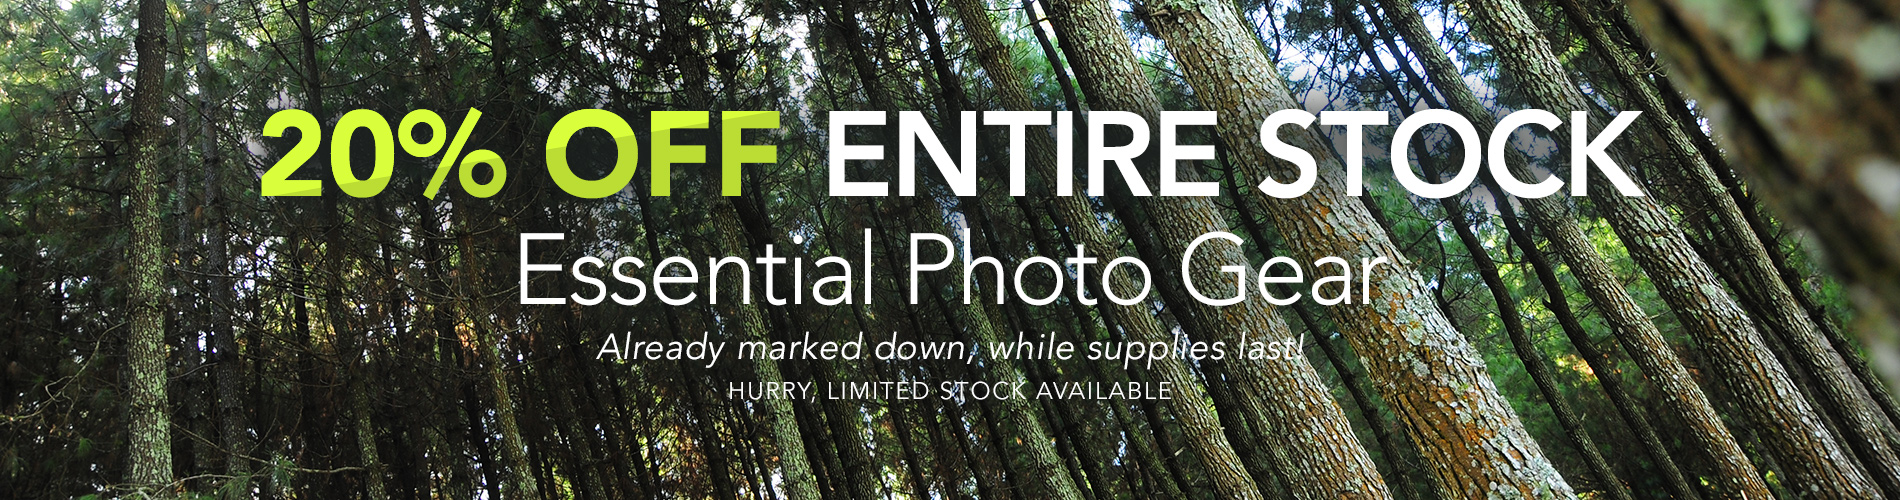 20% OFF ENTIRE STOCK Essential Photo Gear - Already marked down, while supplies last! Hurry, limited stock available.